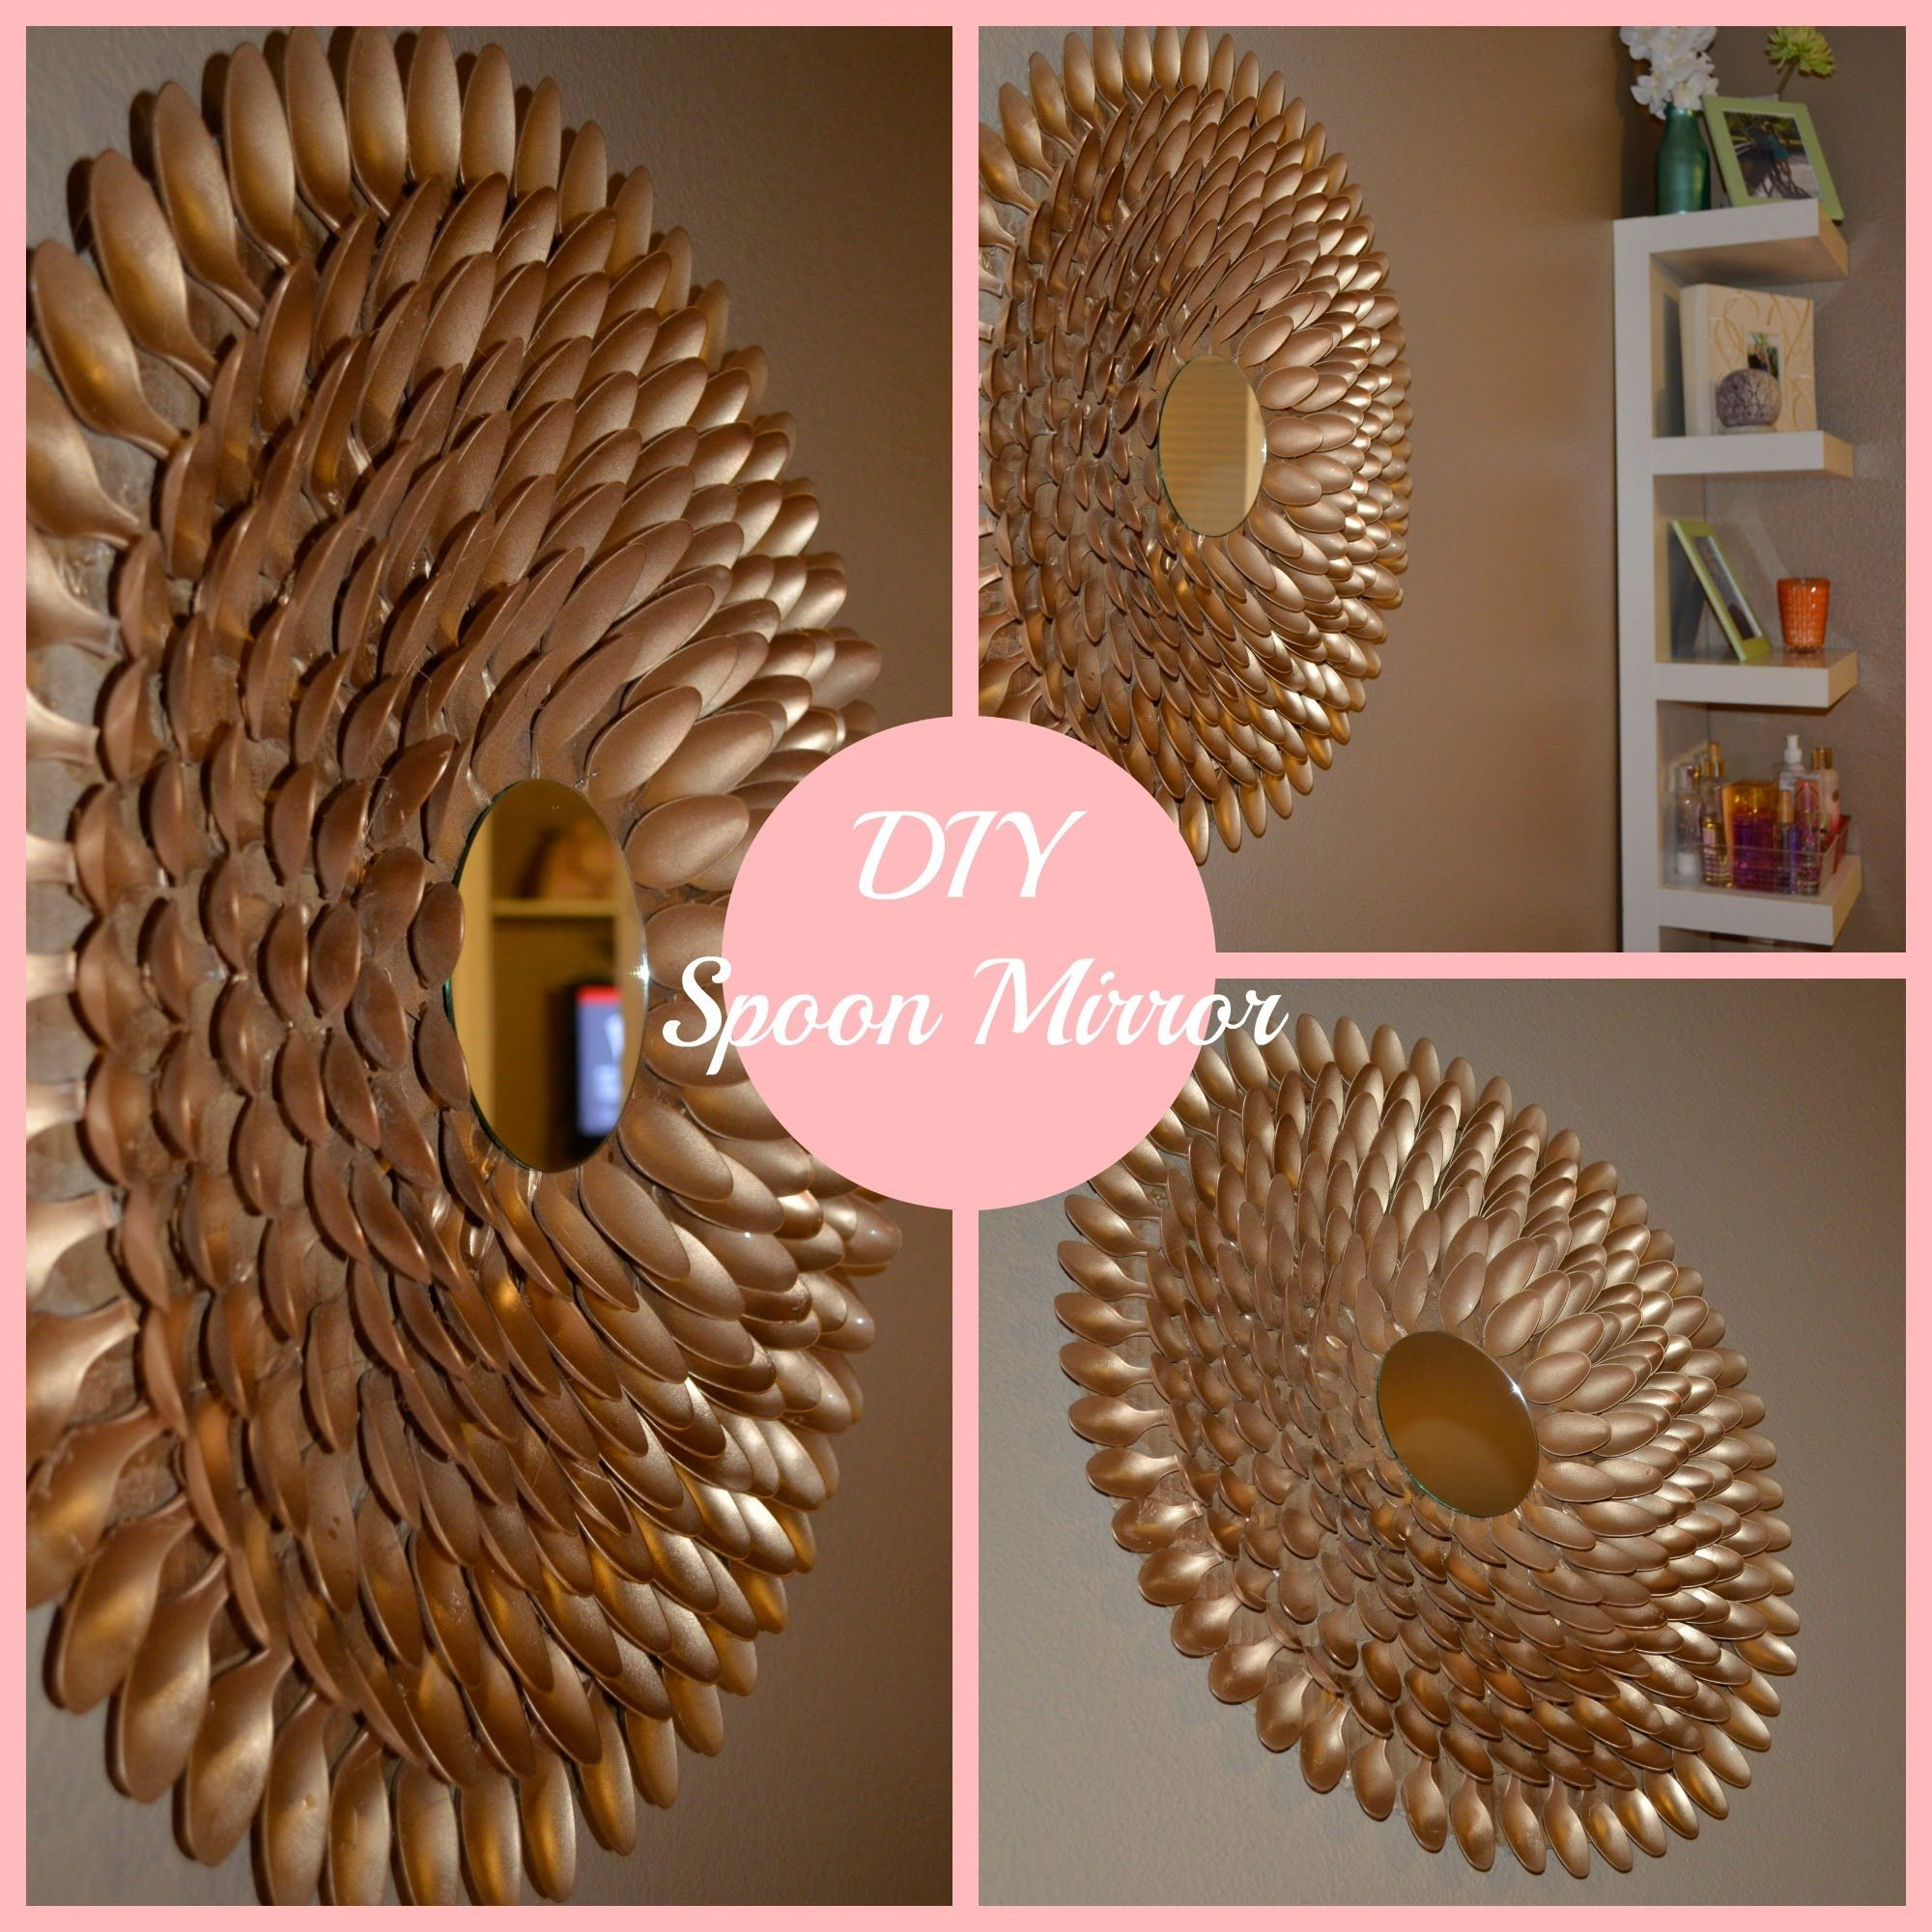 Diy spoon mirror wall decor diy 39 s pinterest spoon for Home made decoration pieces